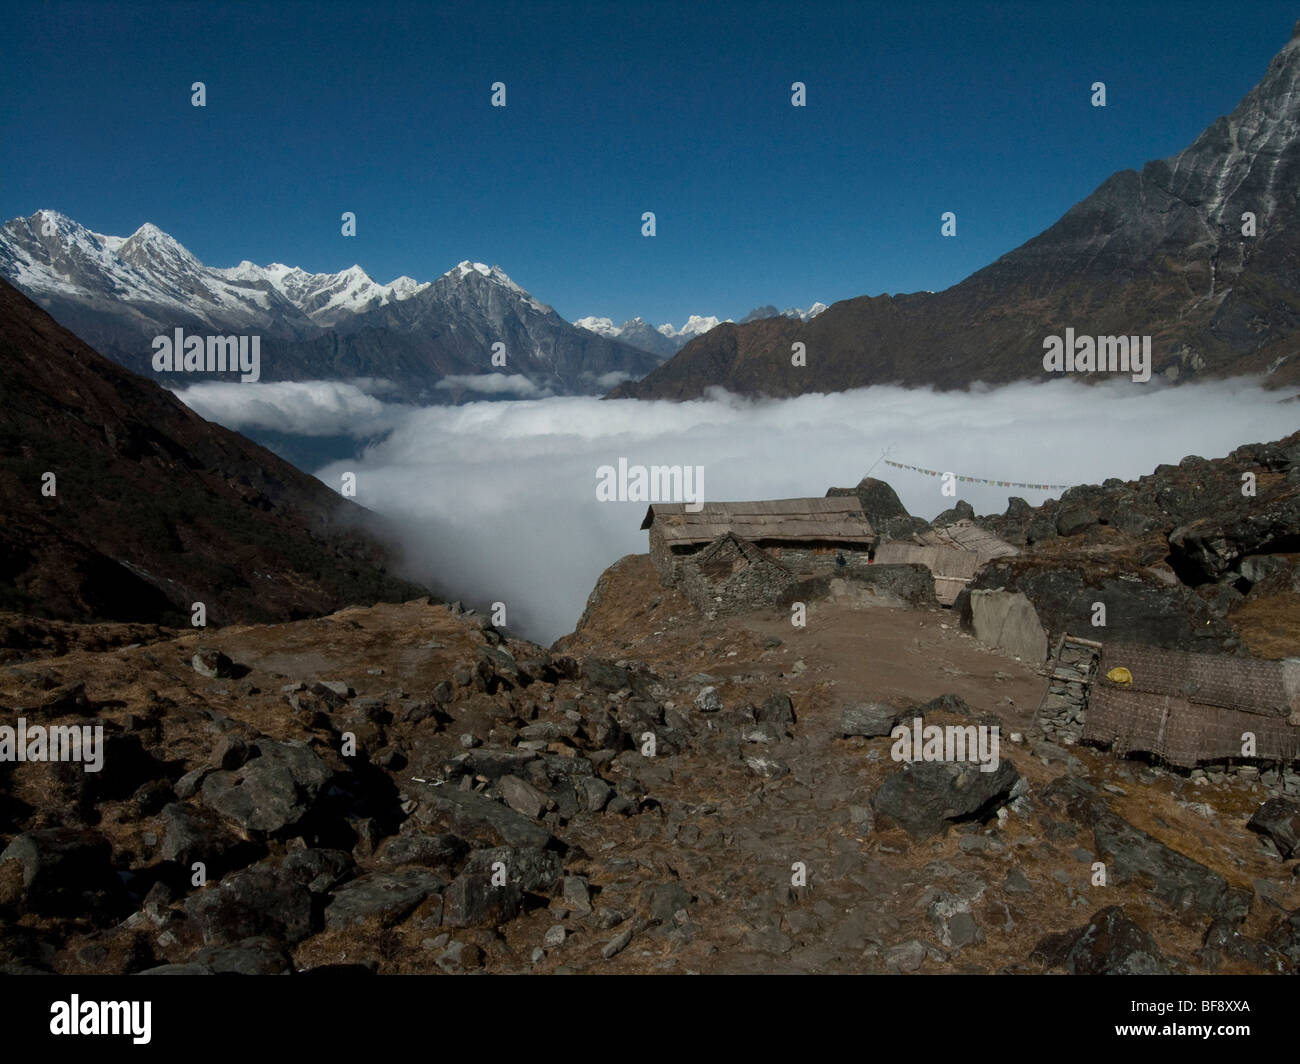 Mera National park. Small sherpa huts or mountain refuges on the paths along the mountain valleys. Nepal. Stock Photo